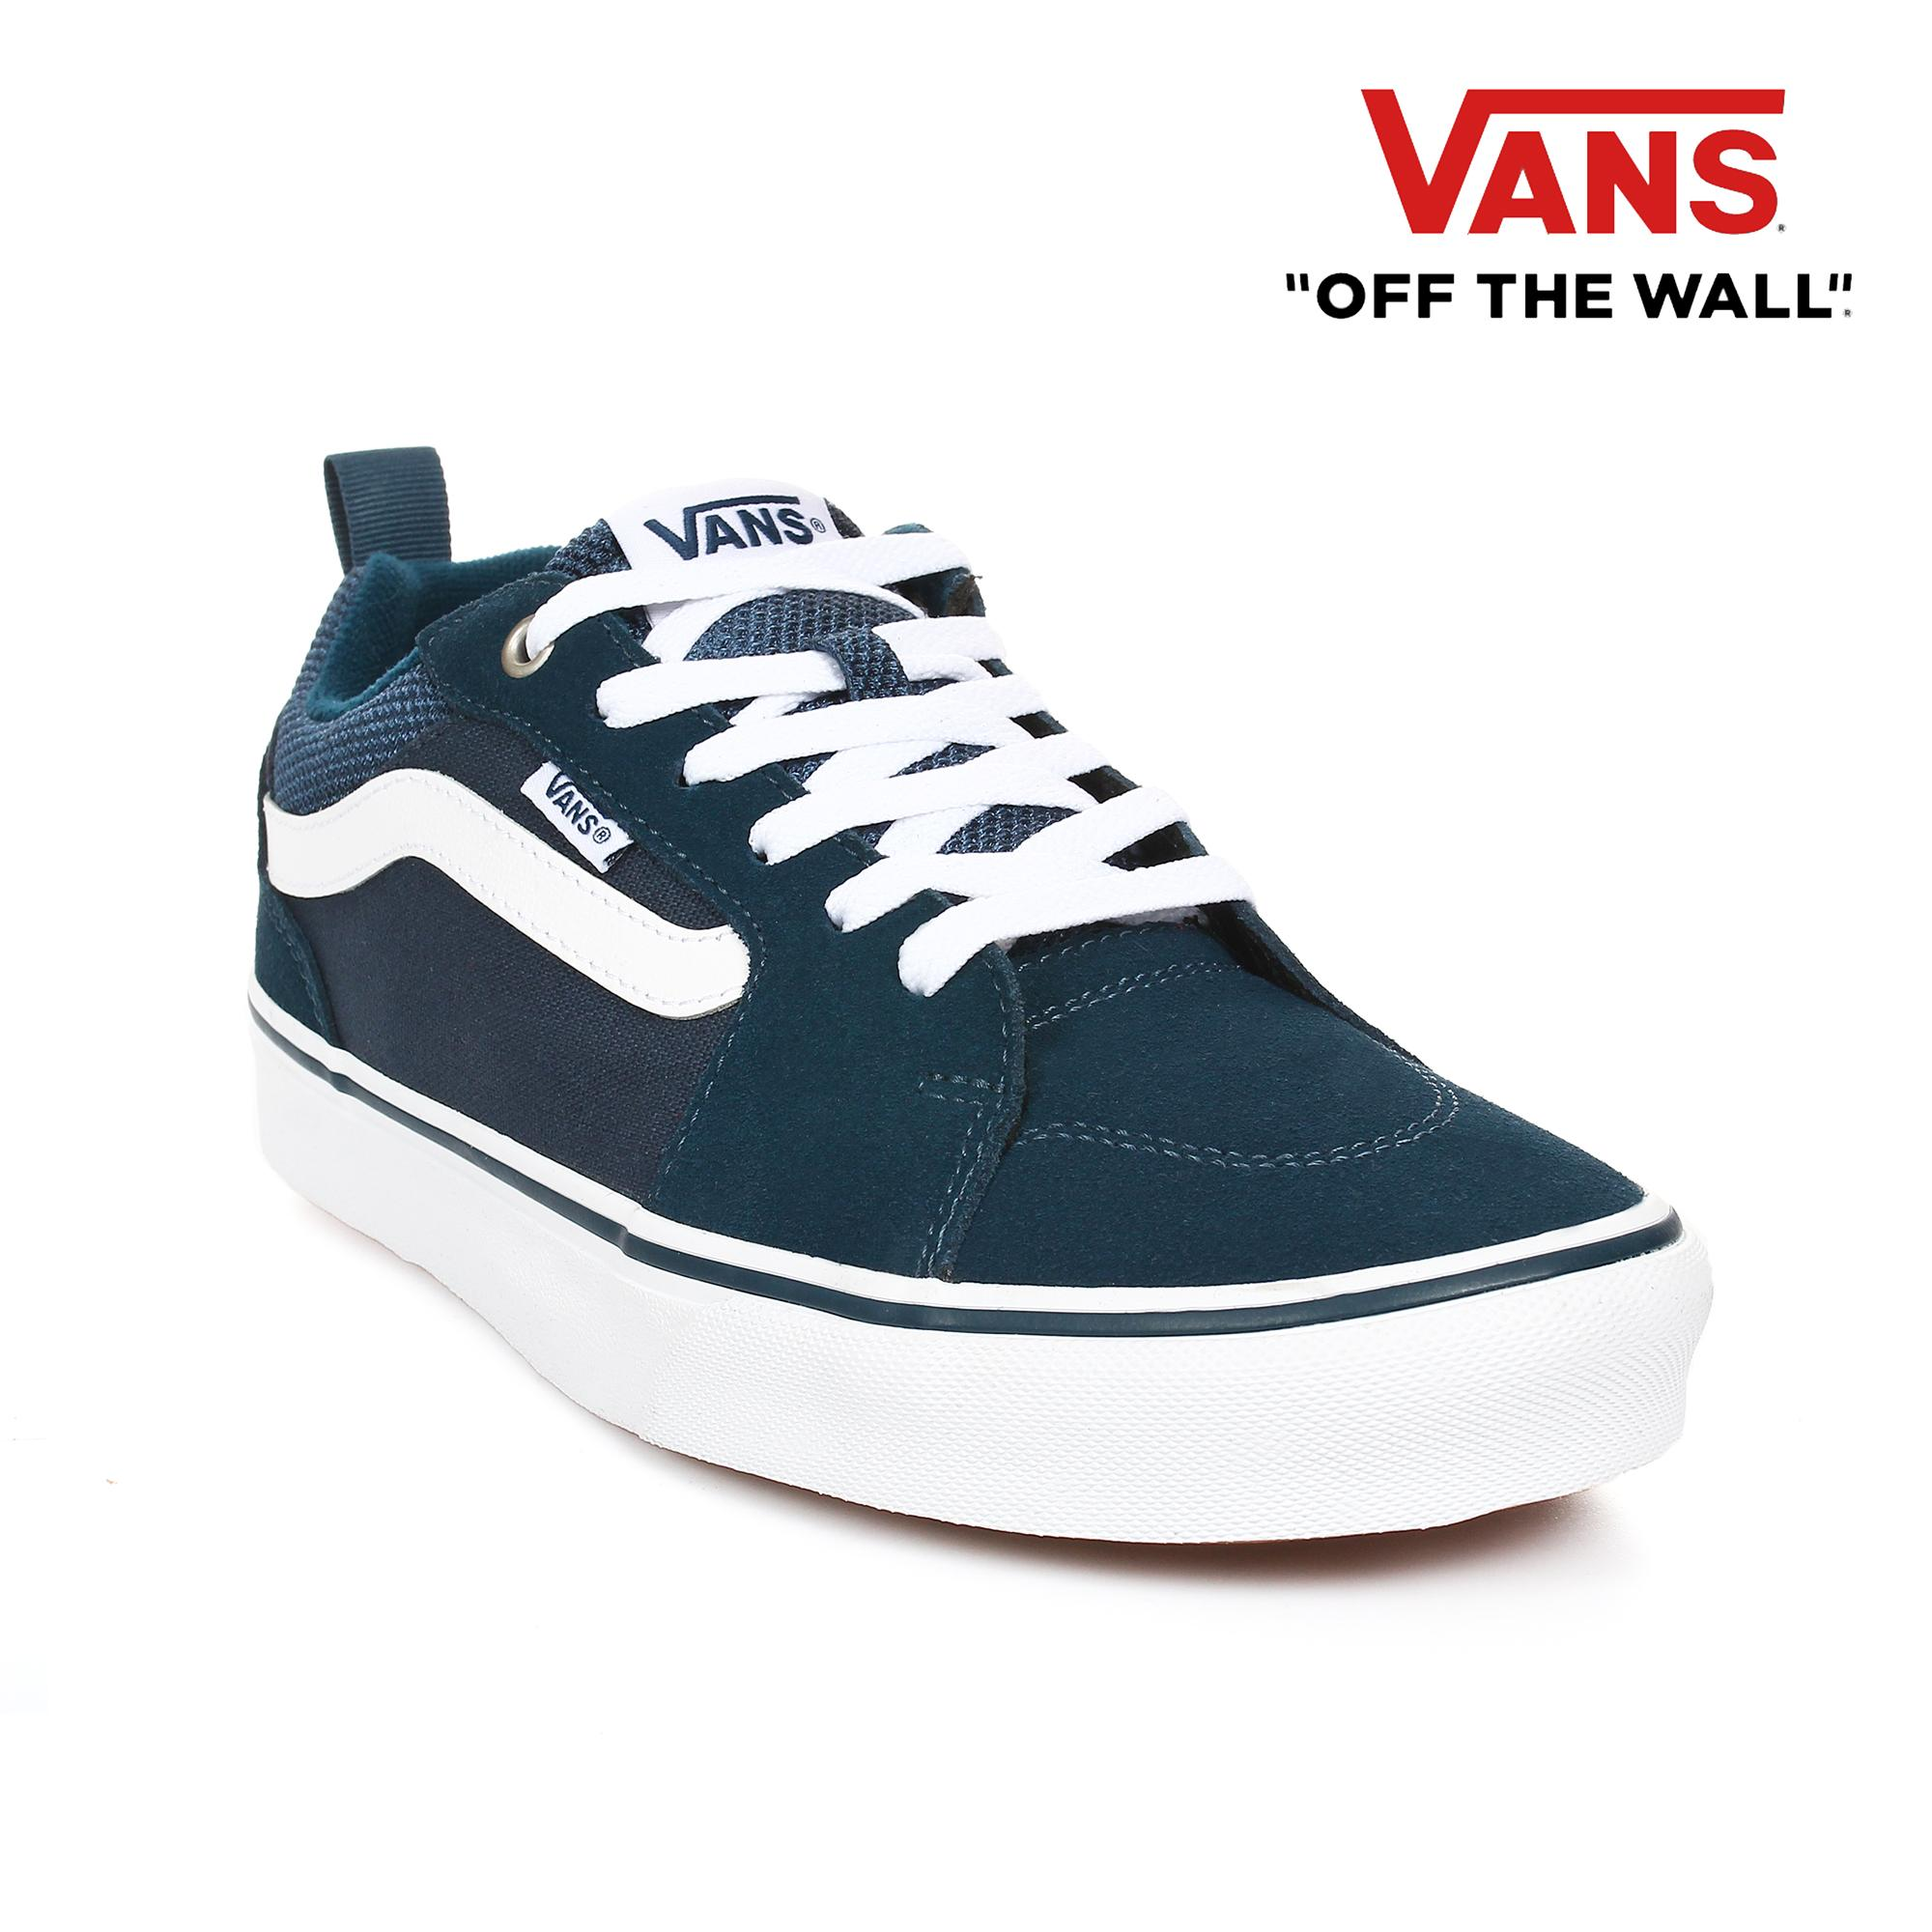 c515df8848 Vans Shoes for Men Philippines - Vans Men s Shoes for sale - prices ...